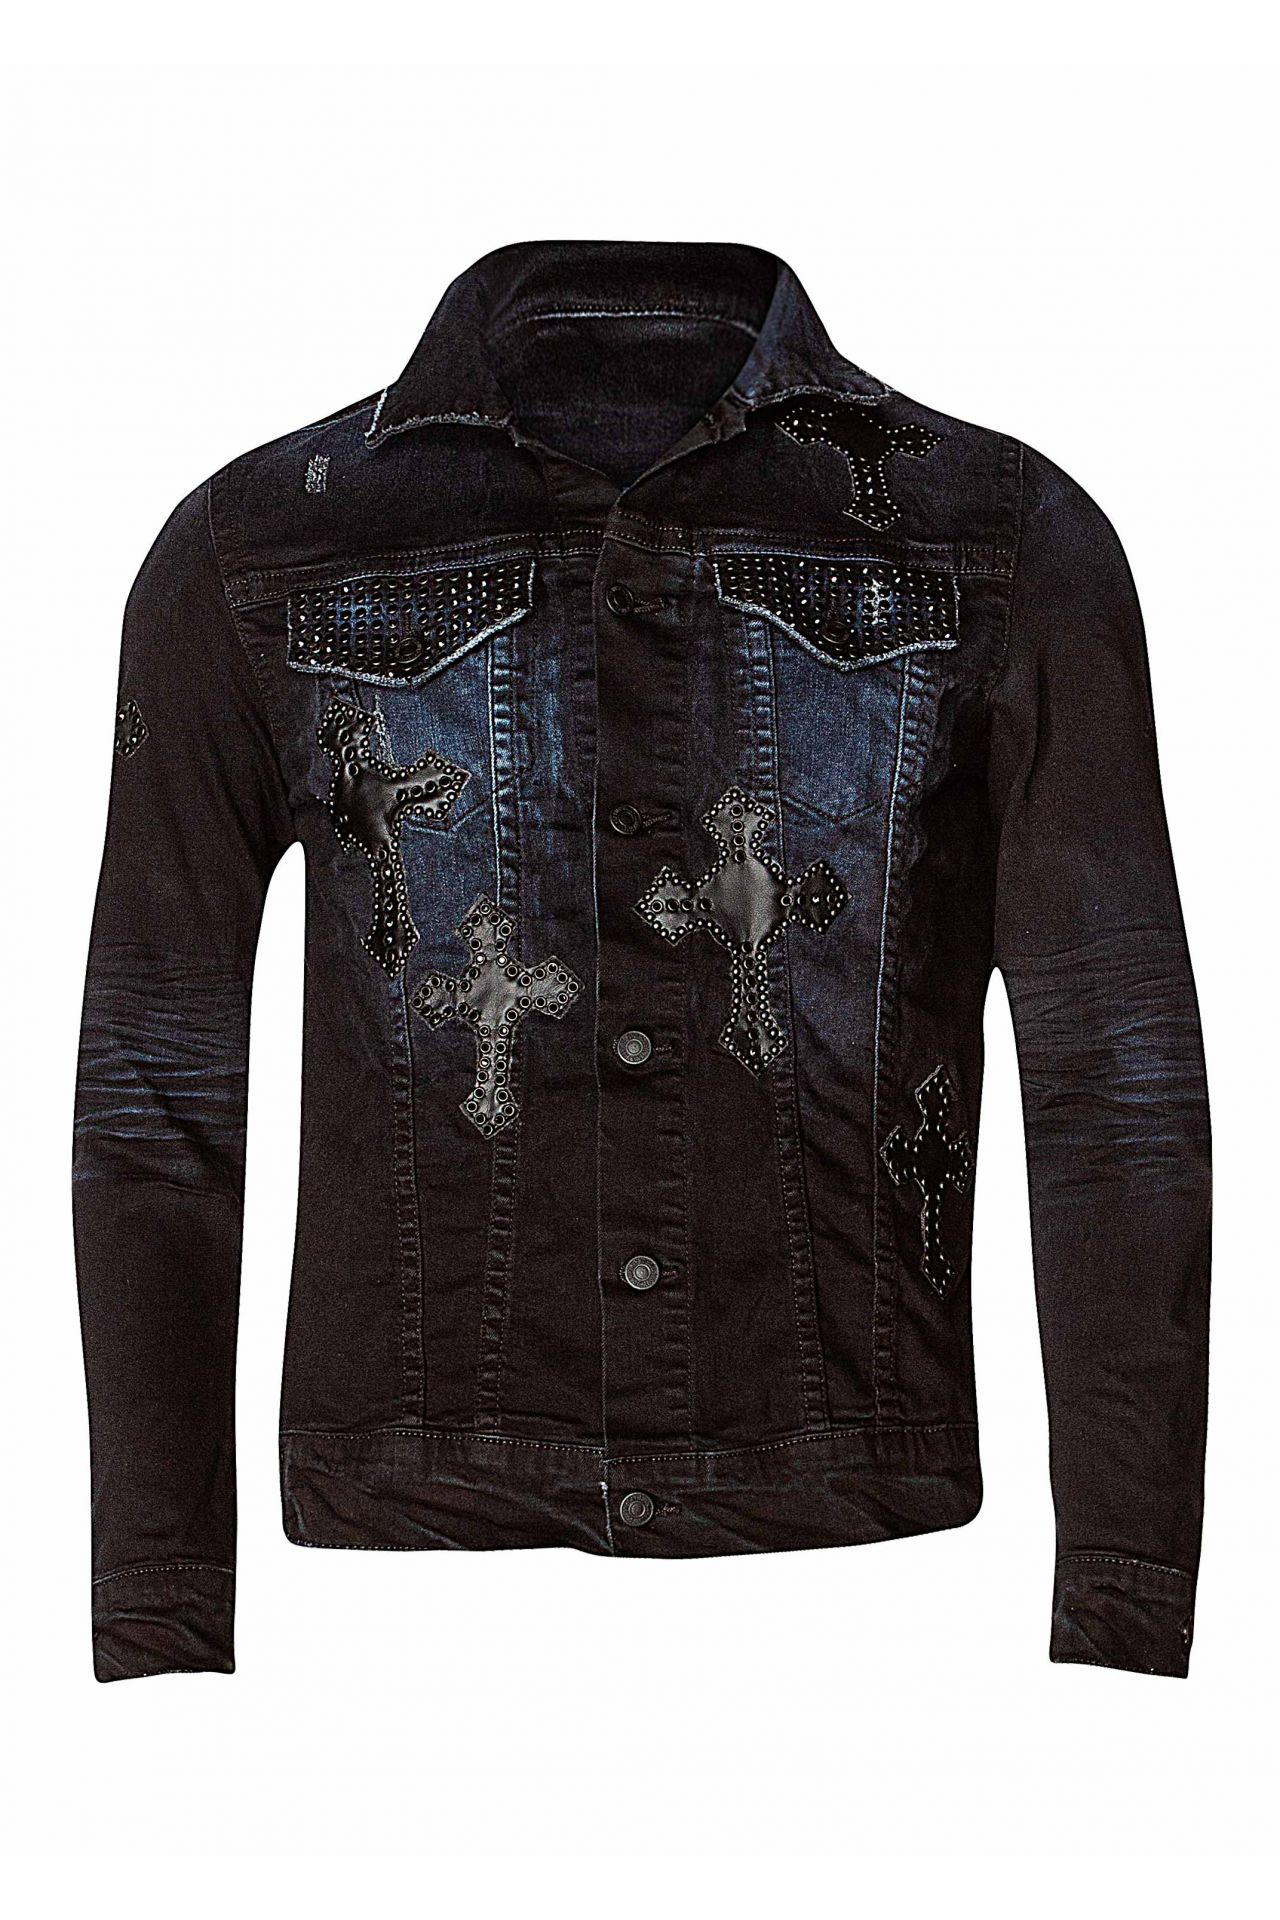 CROSS JACKET IN F_UP BLACK WITH CRYSTALS